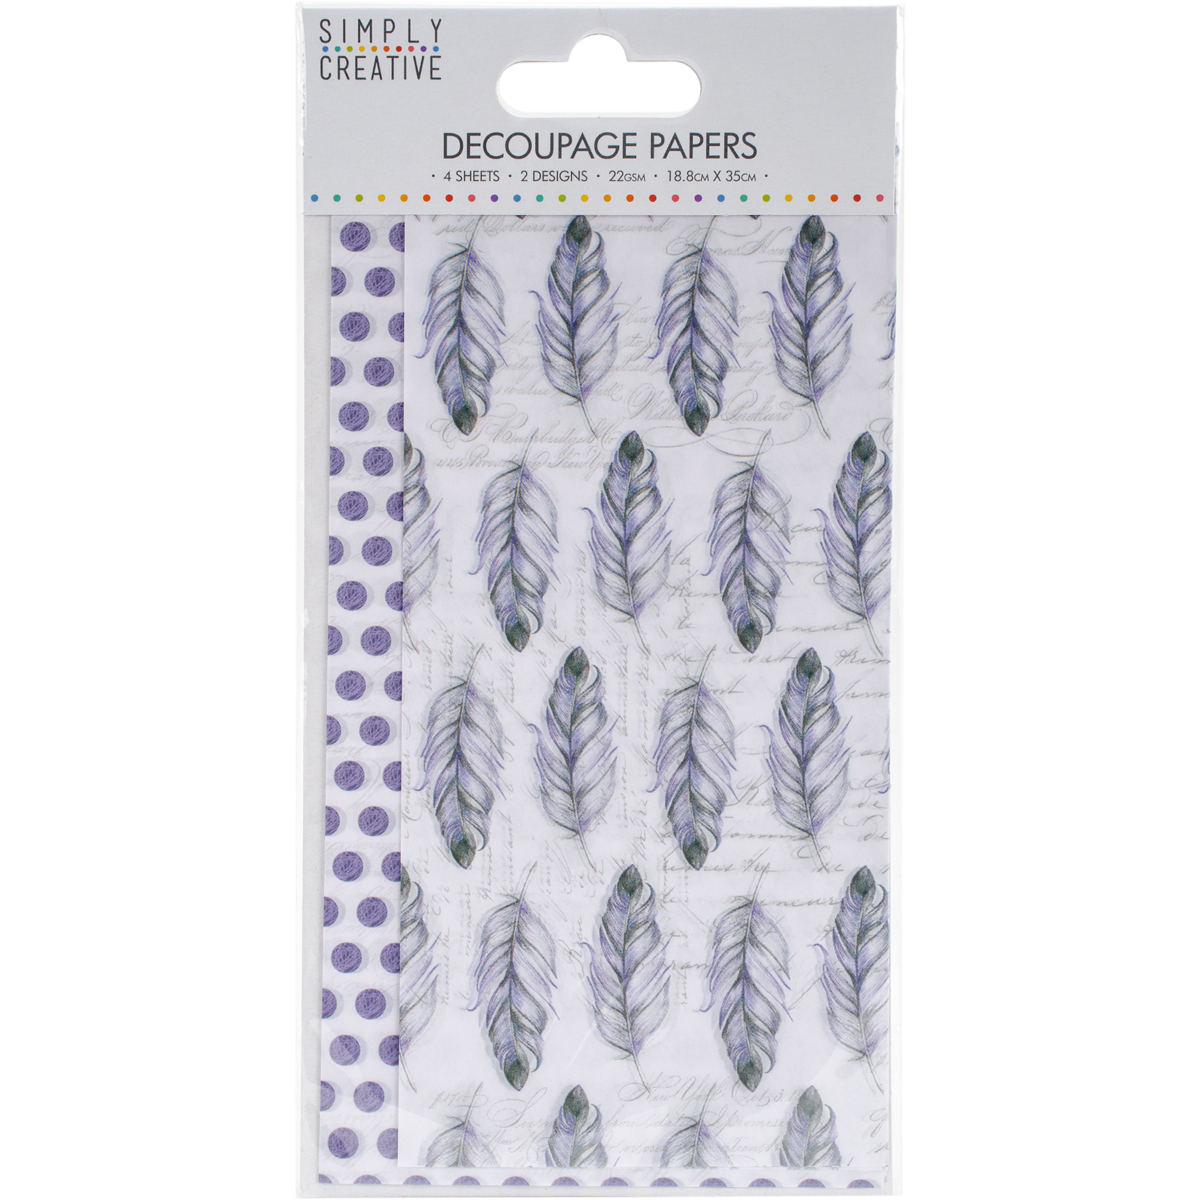 Simply Creative Decoupage Paper 18.8cmX35cm 4/Pkg-Purple Feathers